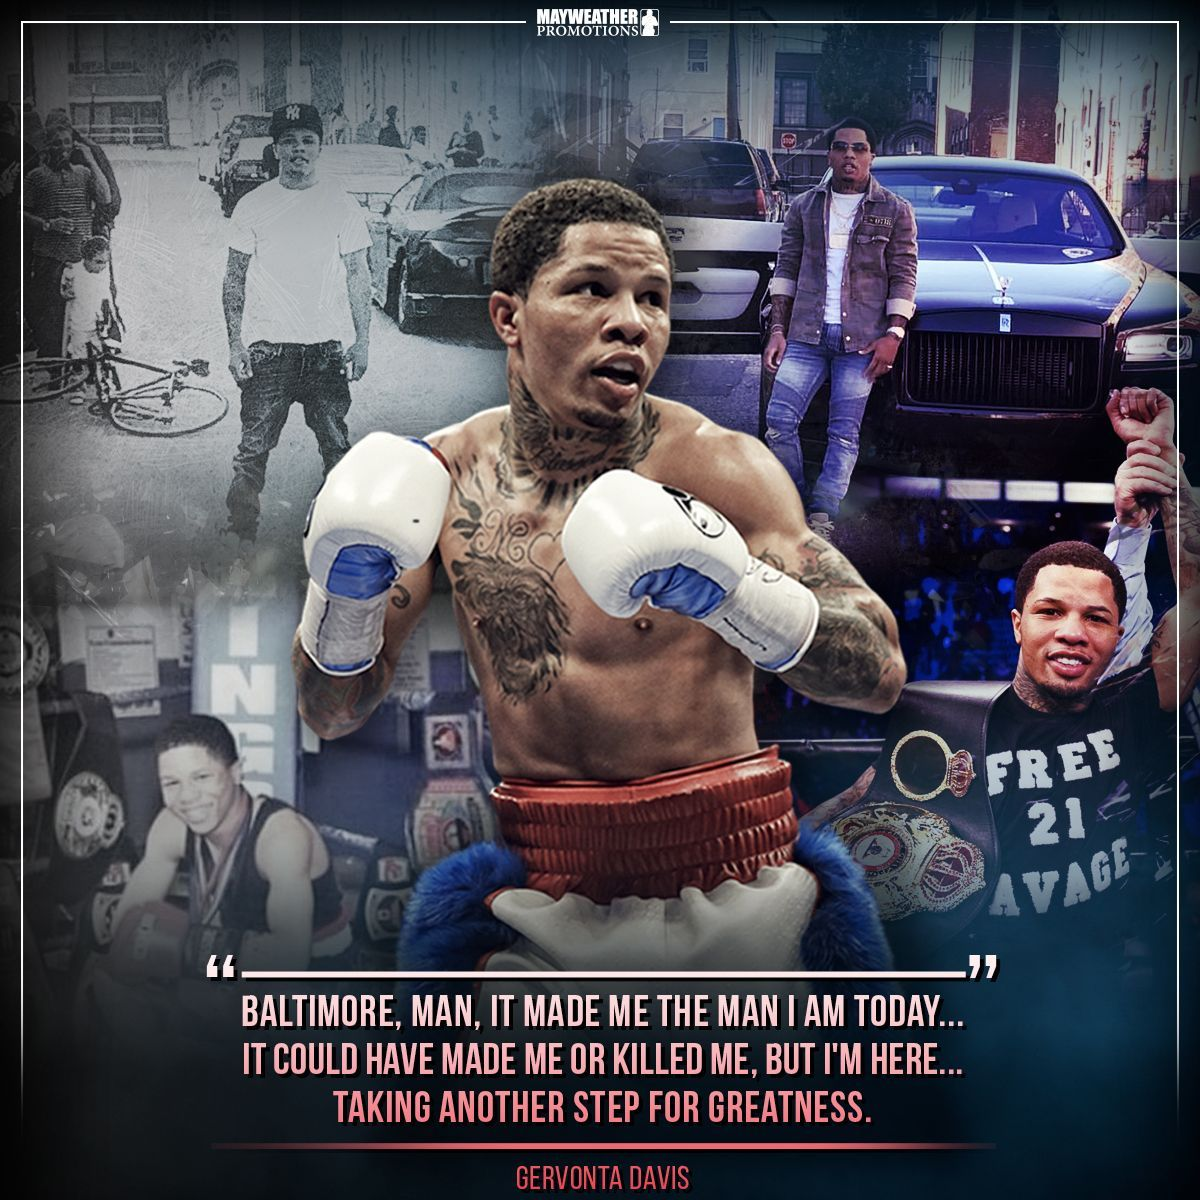 test Twitter Media - When the deck is stacked against you, reshuffle the deck. Nothing is more motivating than a person defying the odds. The streets raised him, but boxing saved him. How's that for motivation! #MotivationMonday  @gervontaa https://t.co/vn6BkcXhed